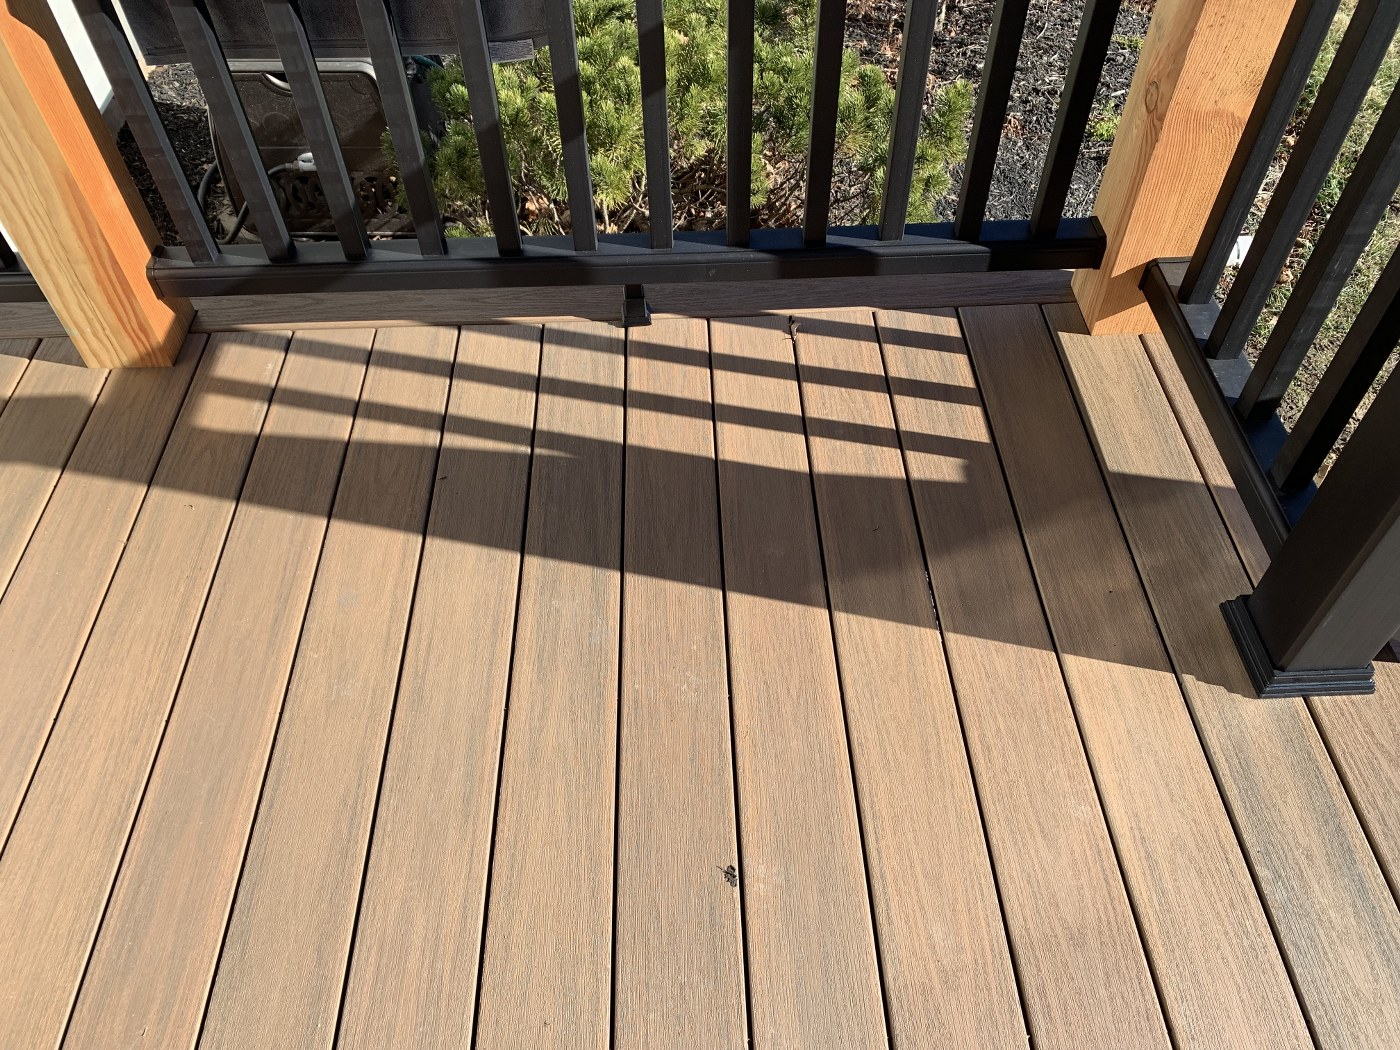 Close up of the new Decking